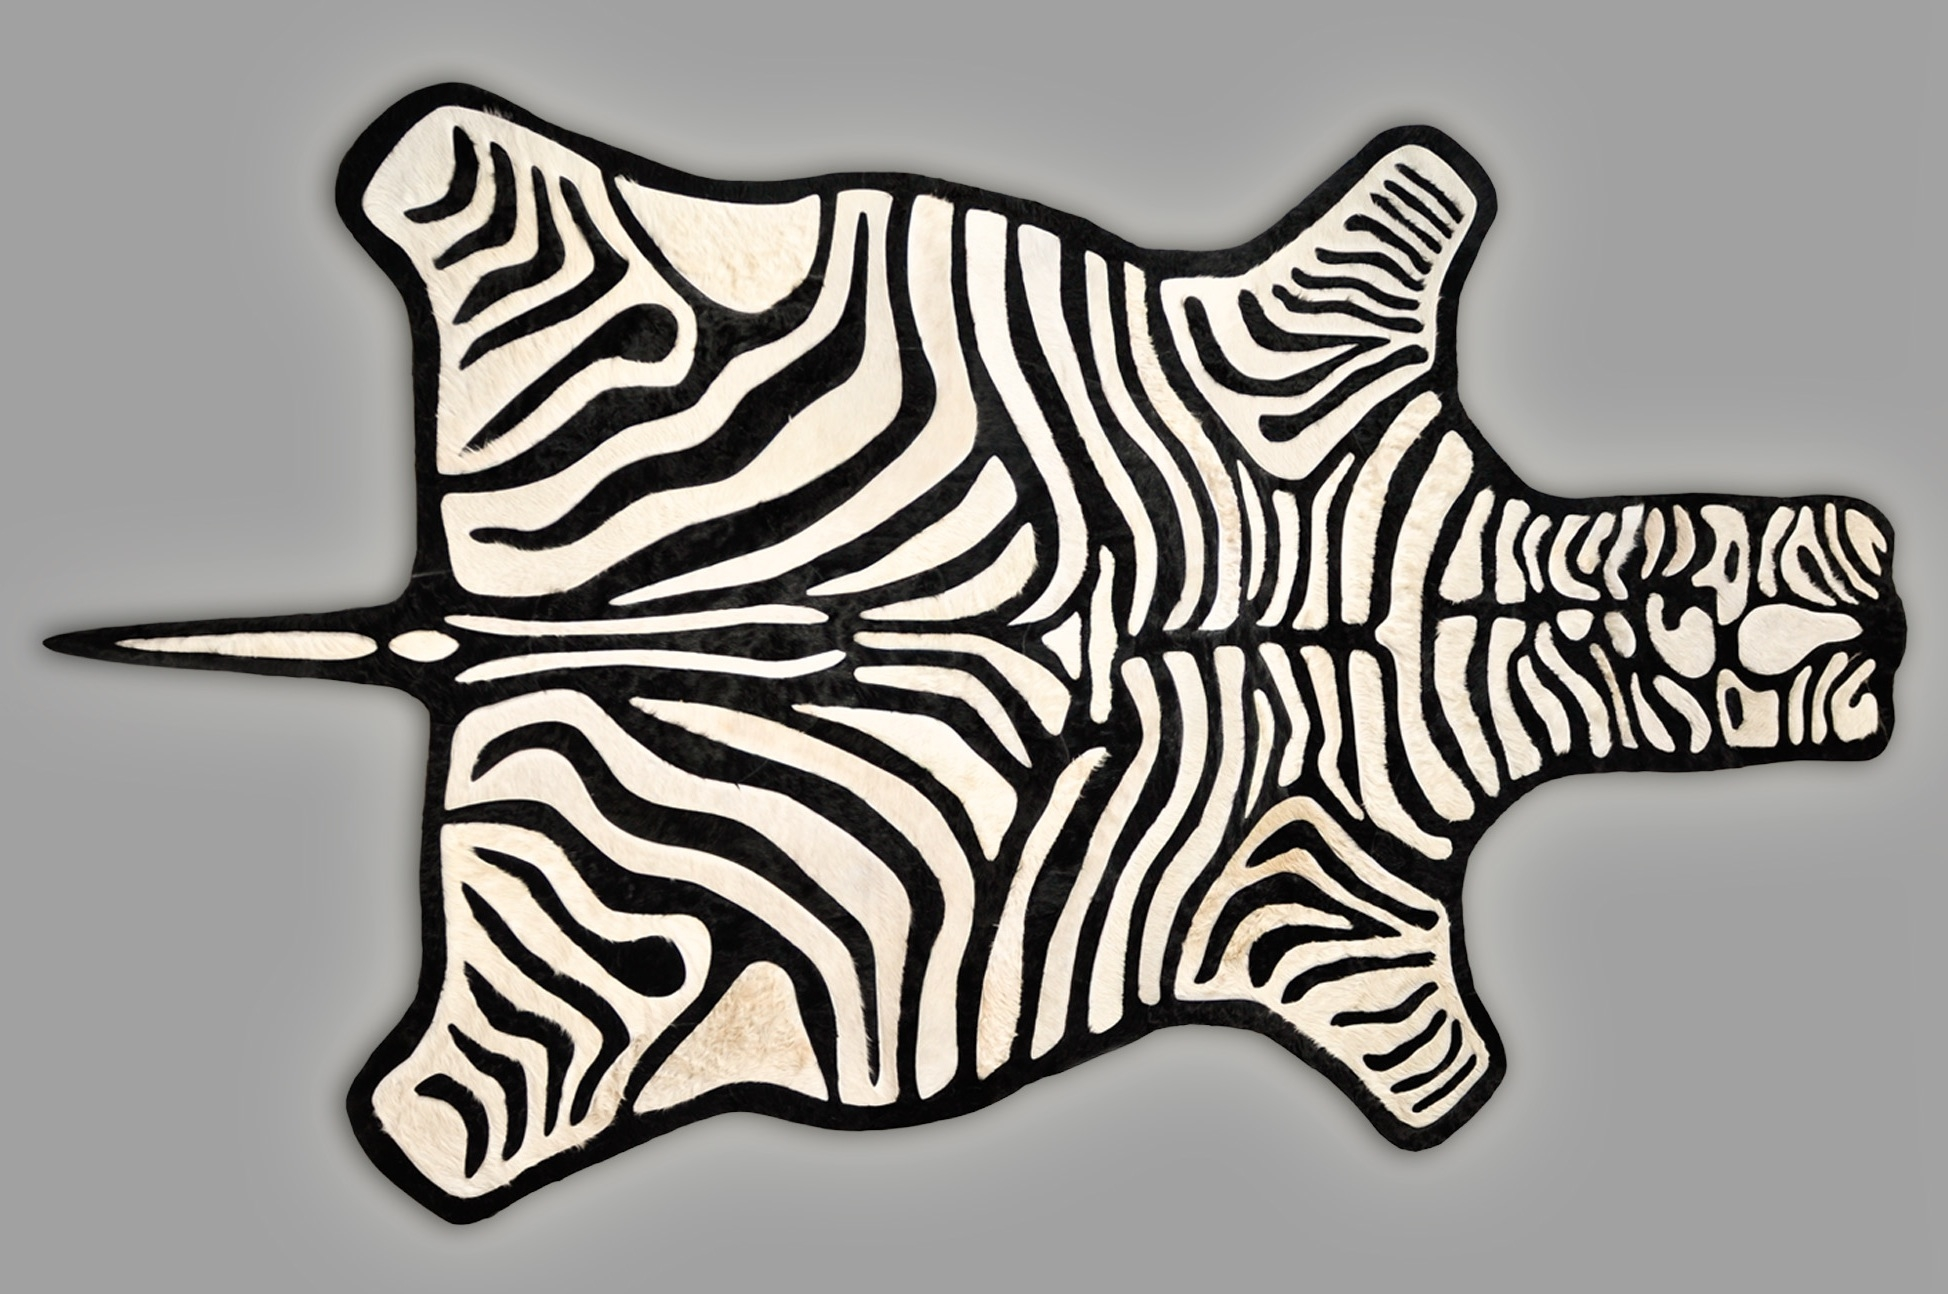 Zebra Rug Real Beautiful Felt Backed Zebra Skin Will Be A In Zebra Skin Rugs (Image 14 of 15)